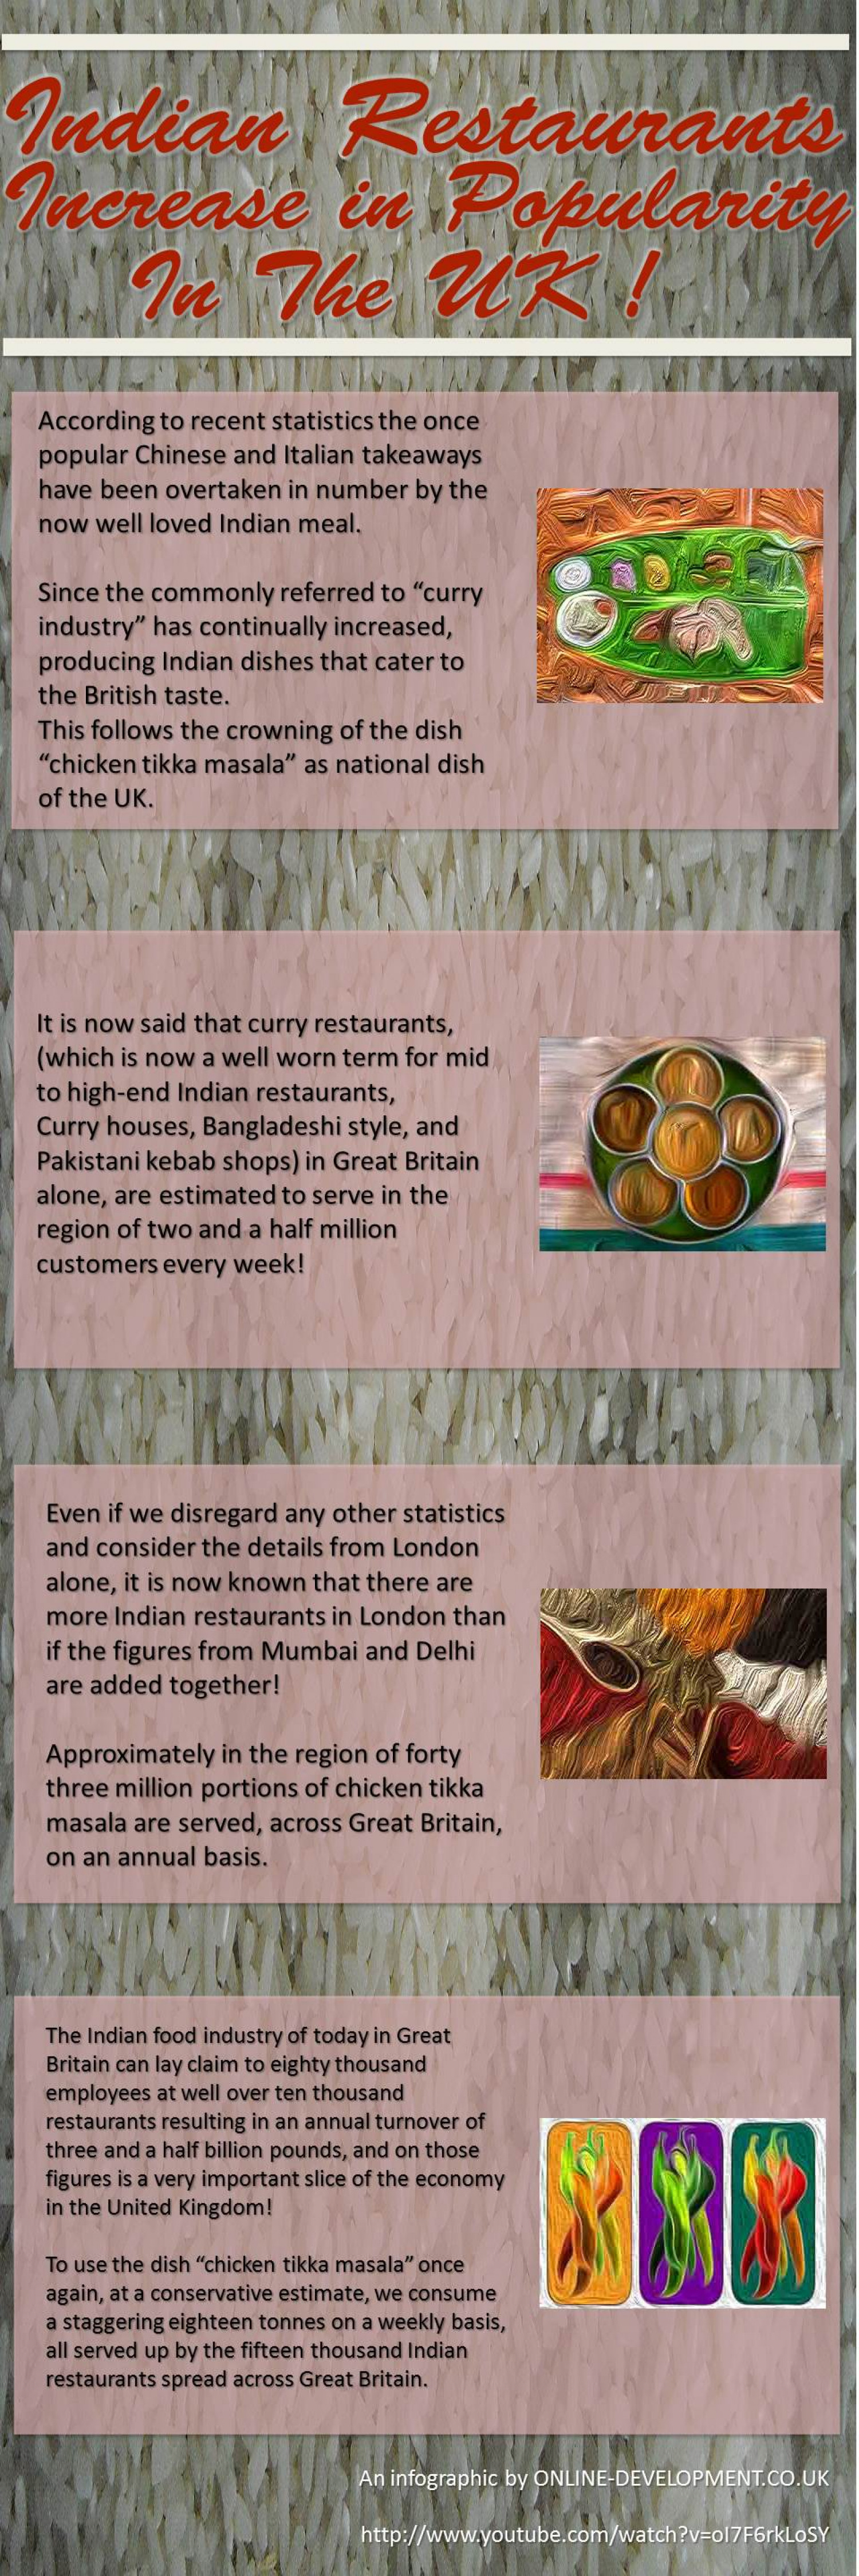 Indian Restaurants in The UK Infographic